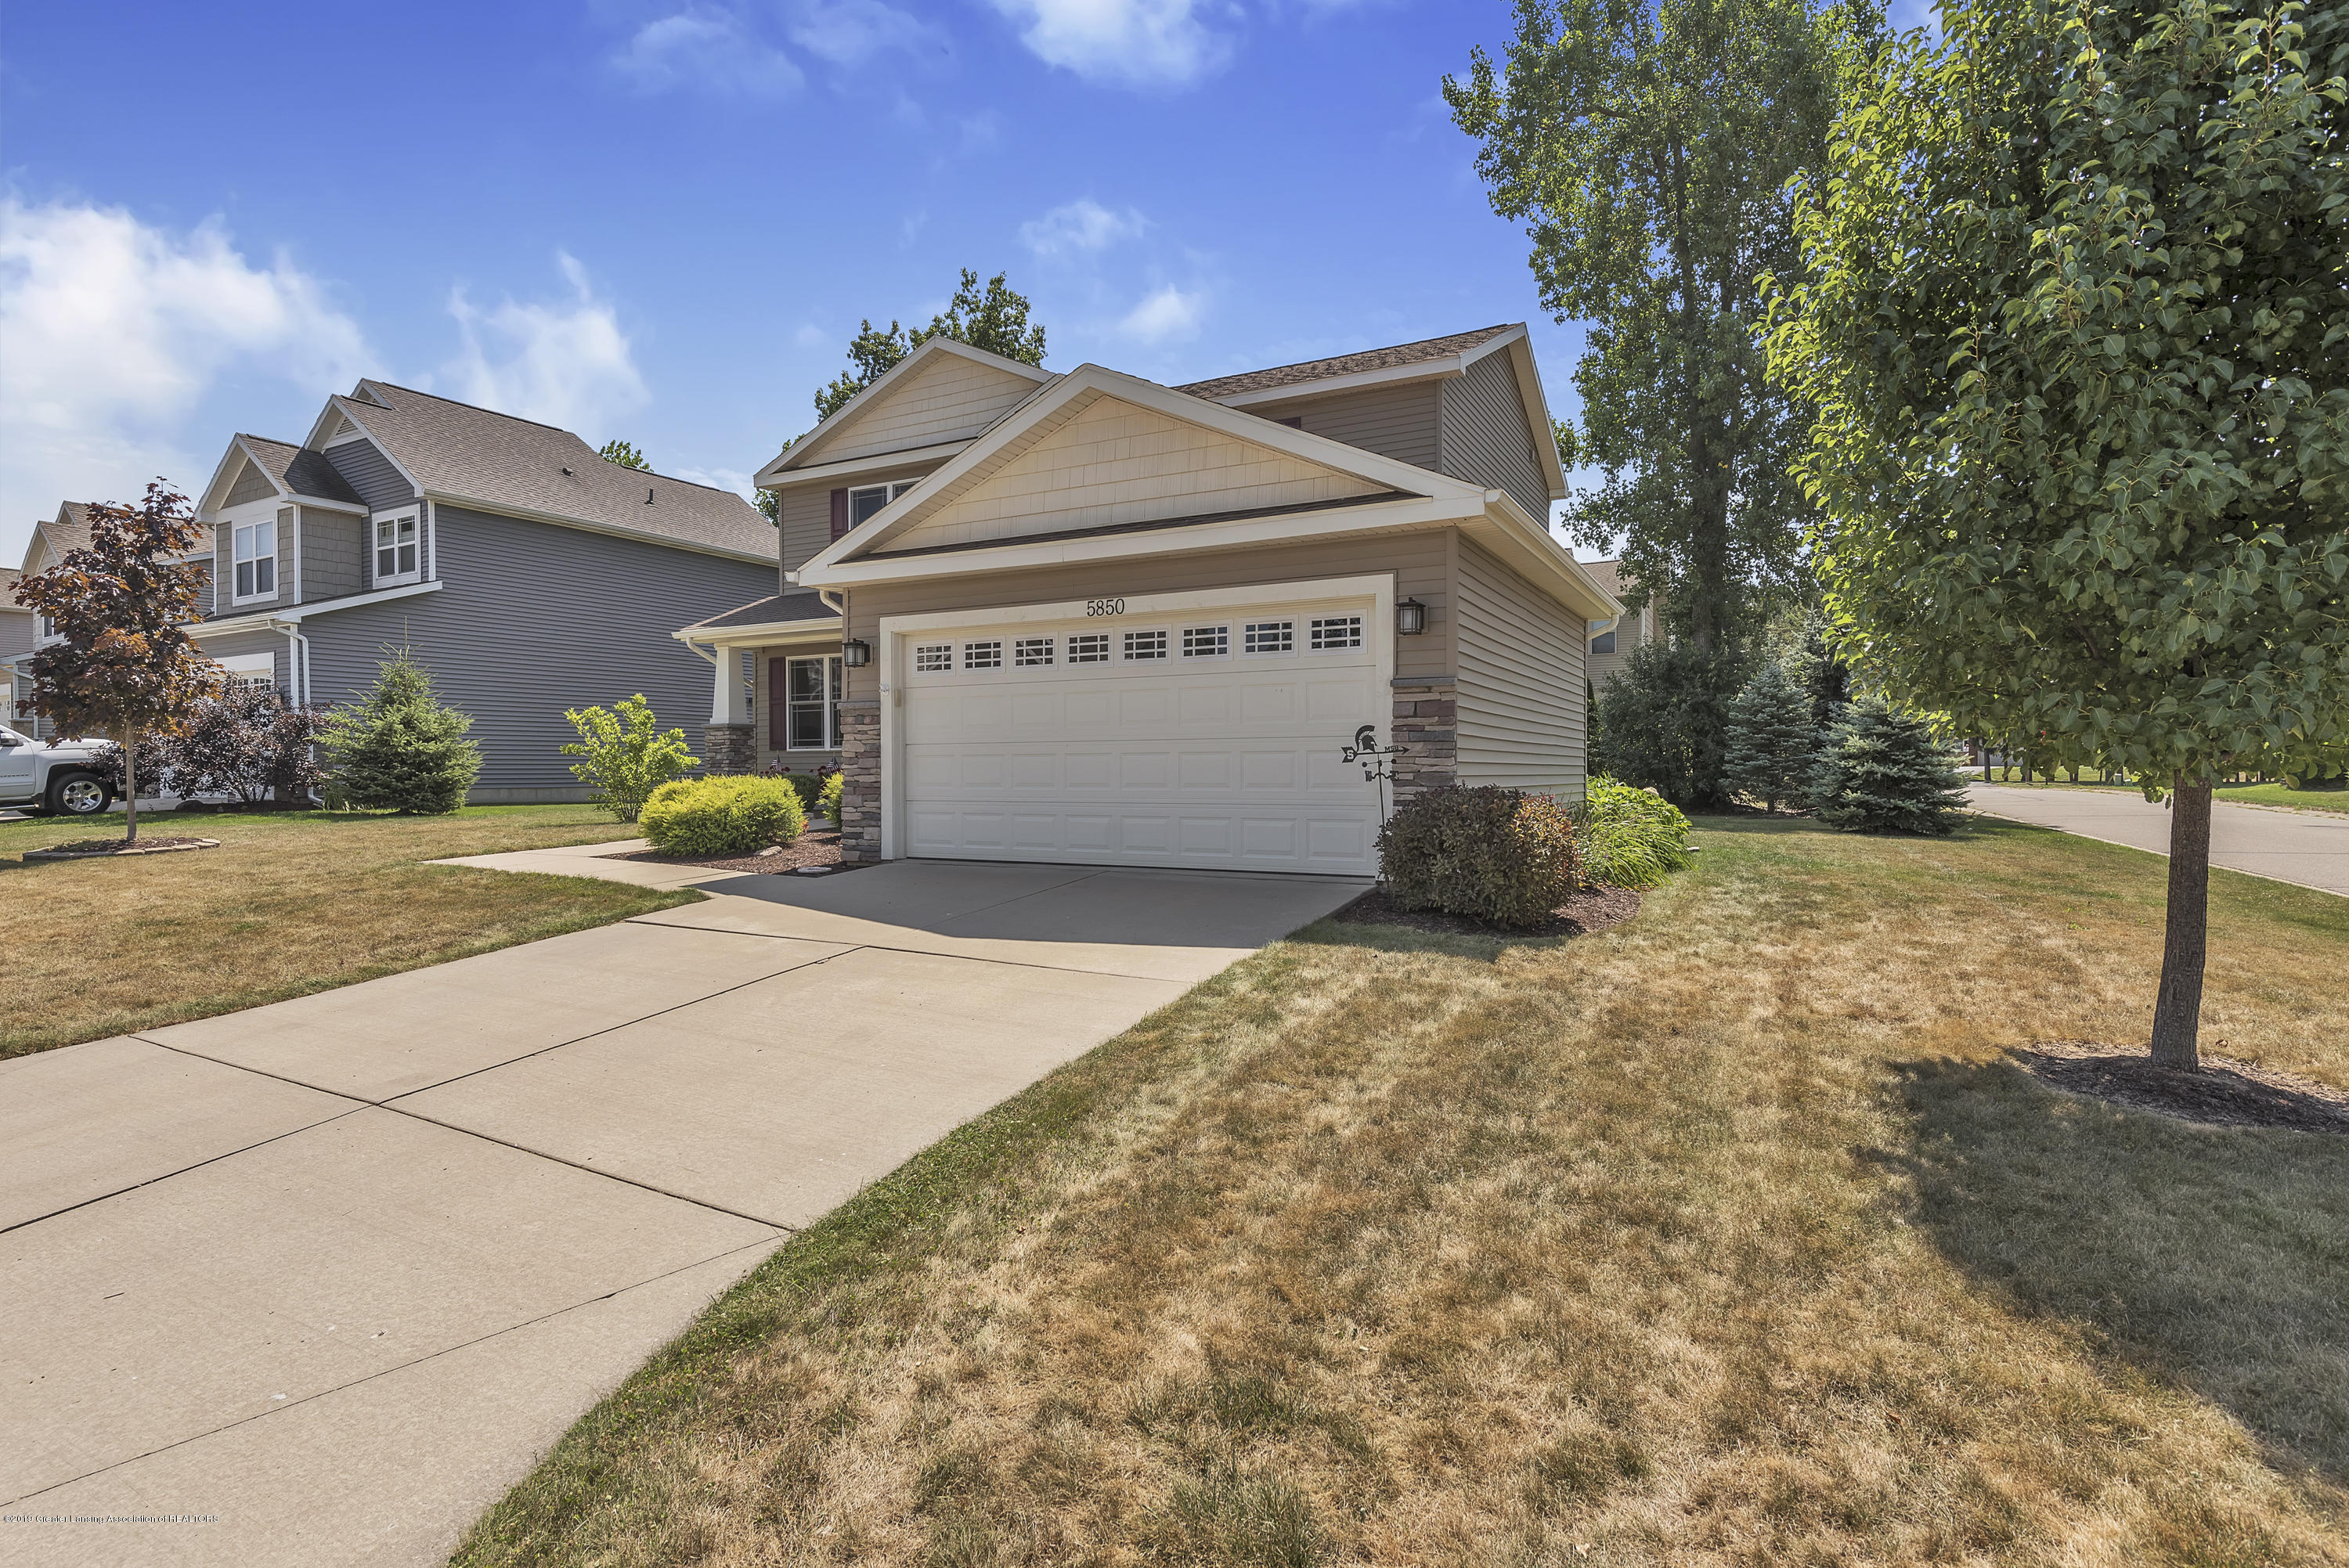 5850 Chartres Way - 5850-Chartres-Way-East-Lansing-MI-3 - 3